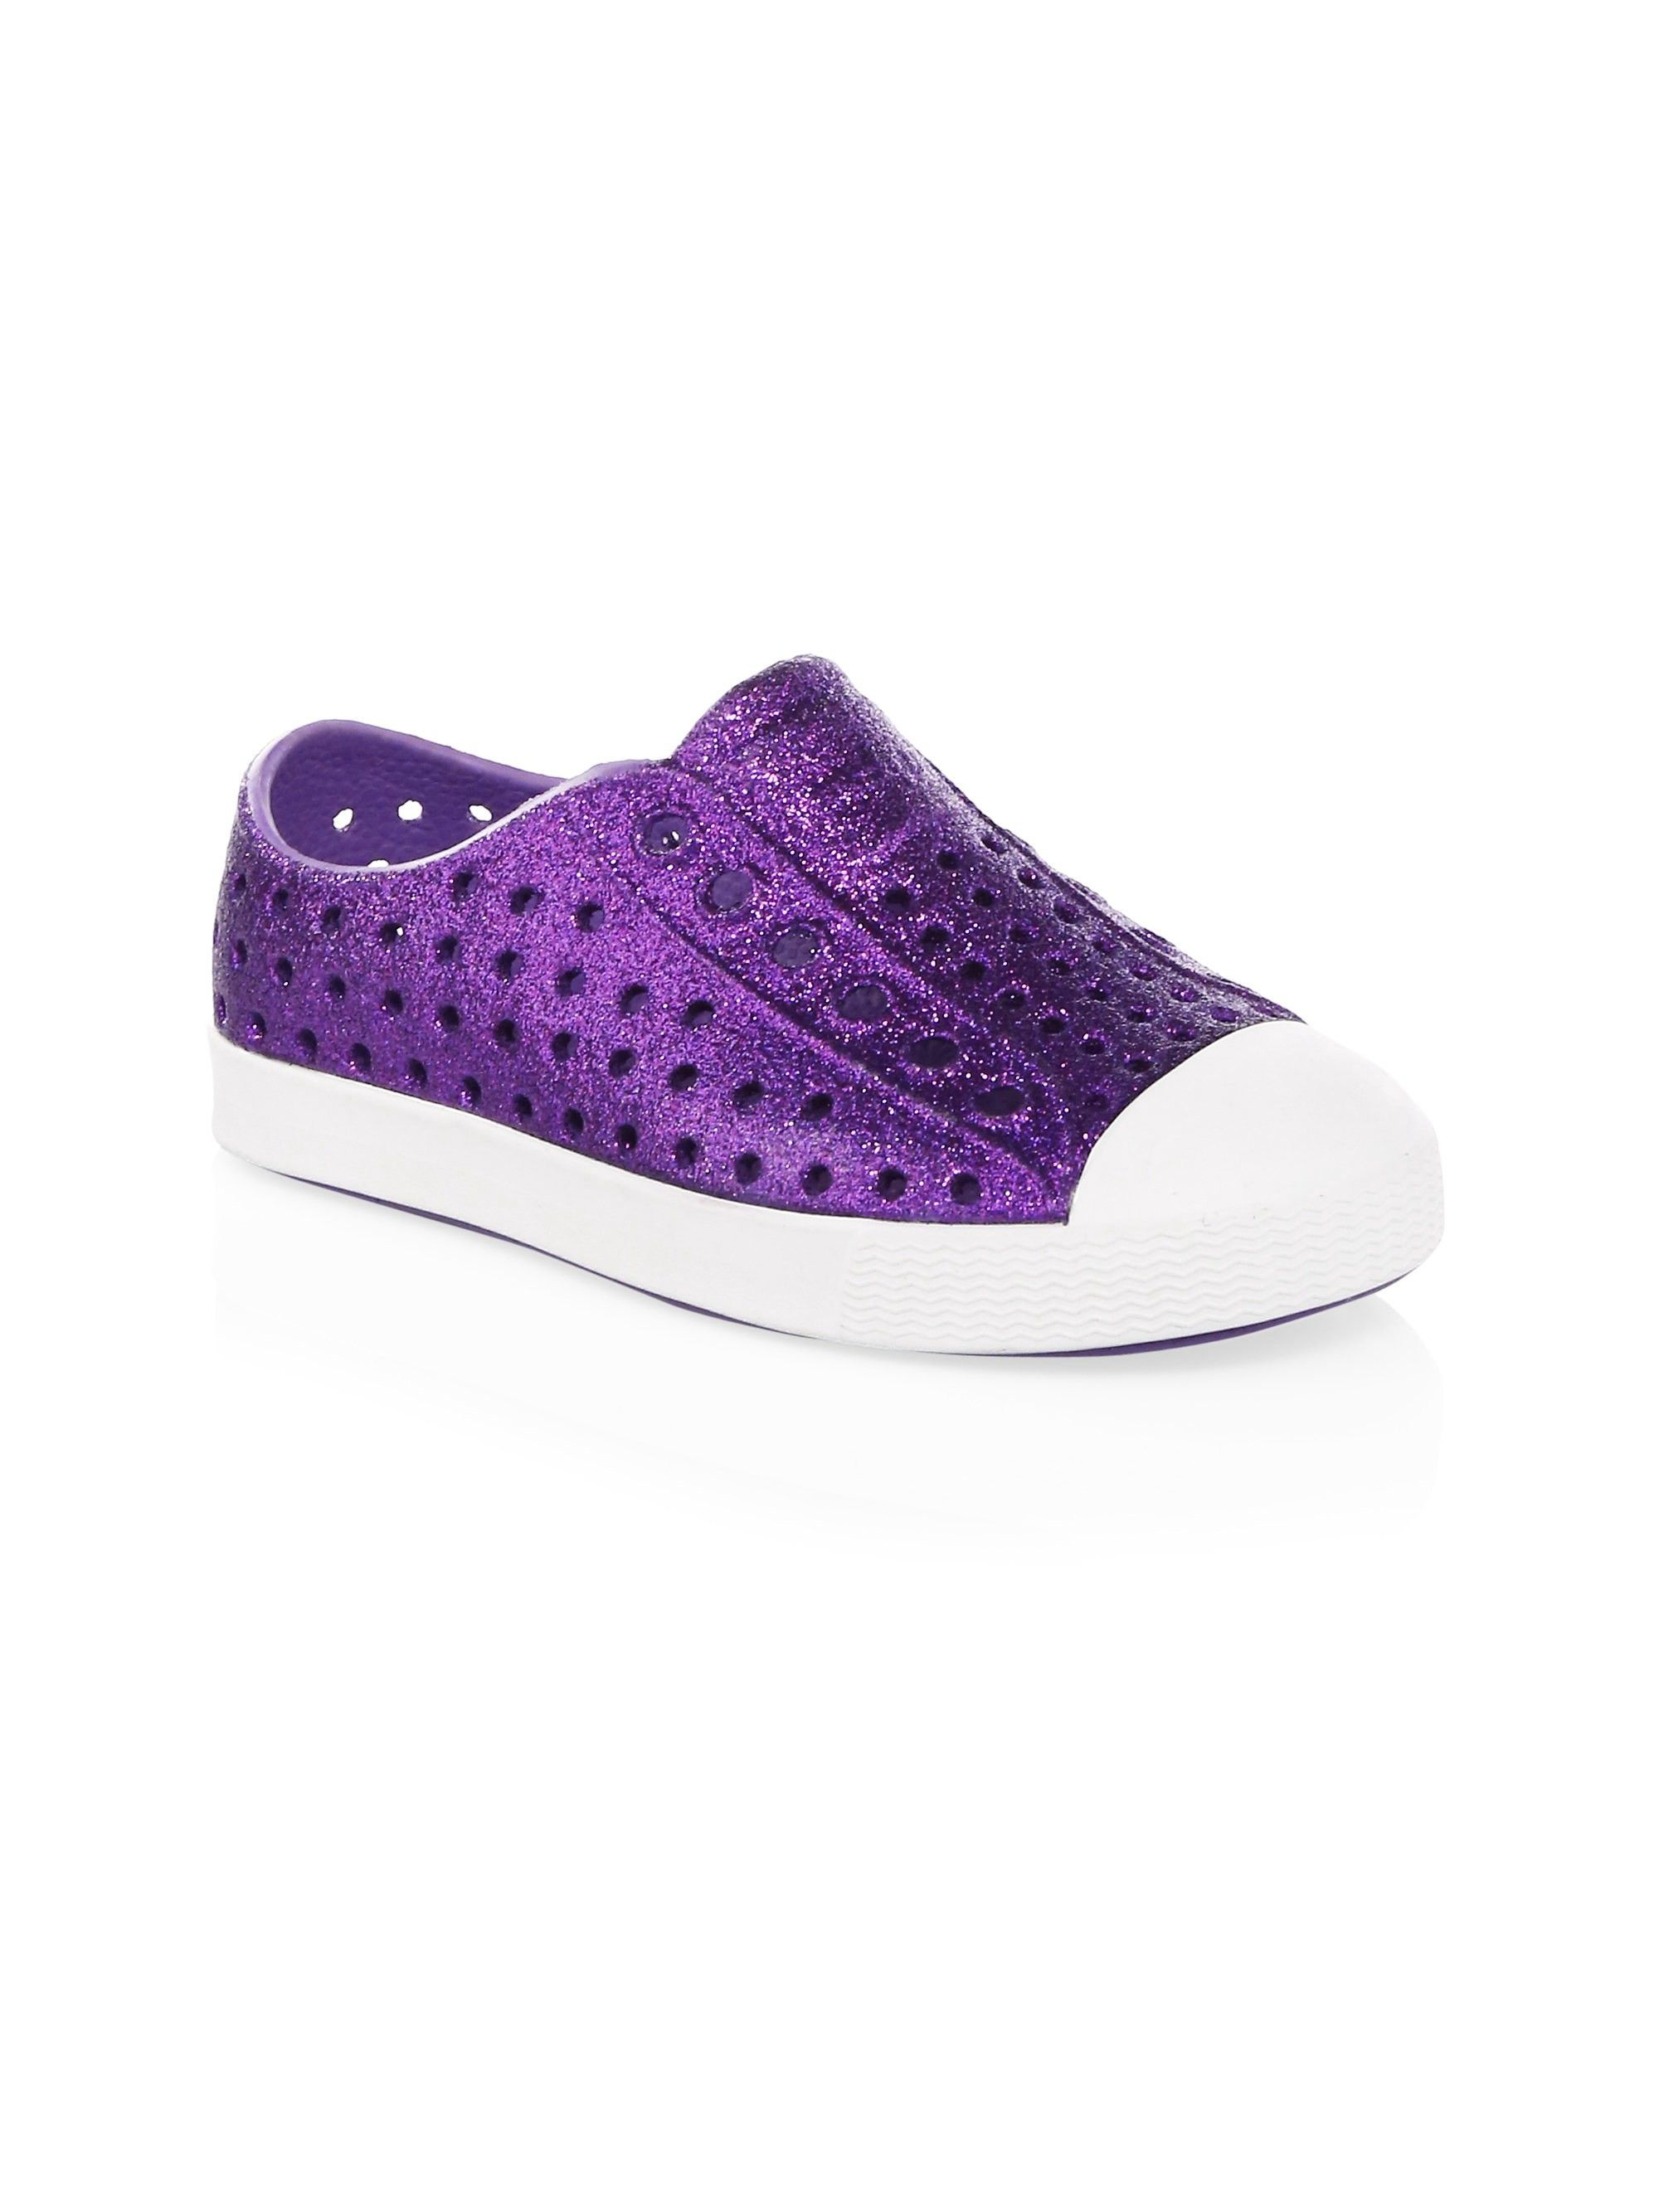 2c208860736d Native Shoes Kids Toddler s   Girl s Jefferson Child Bling Slip-On Sneakers  - Metal 5 (Baby)